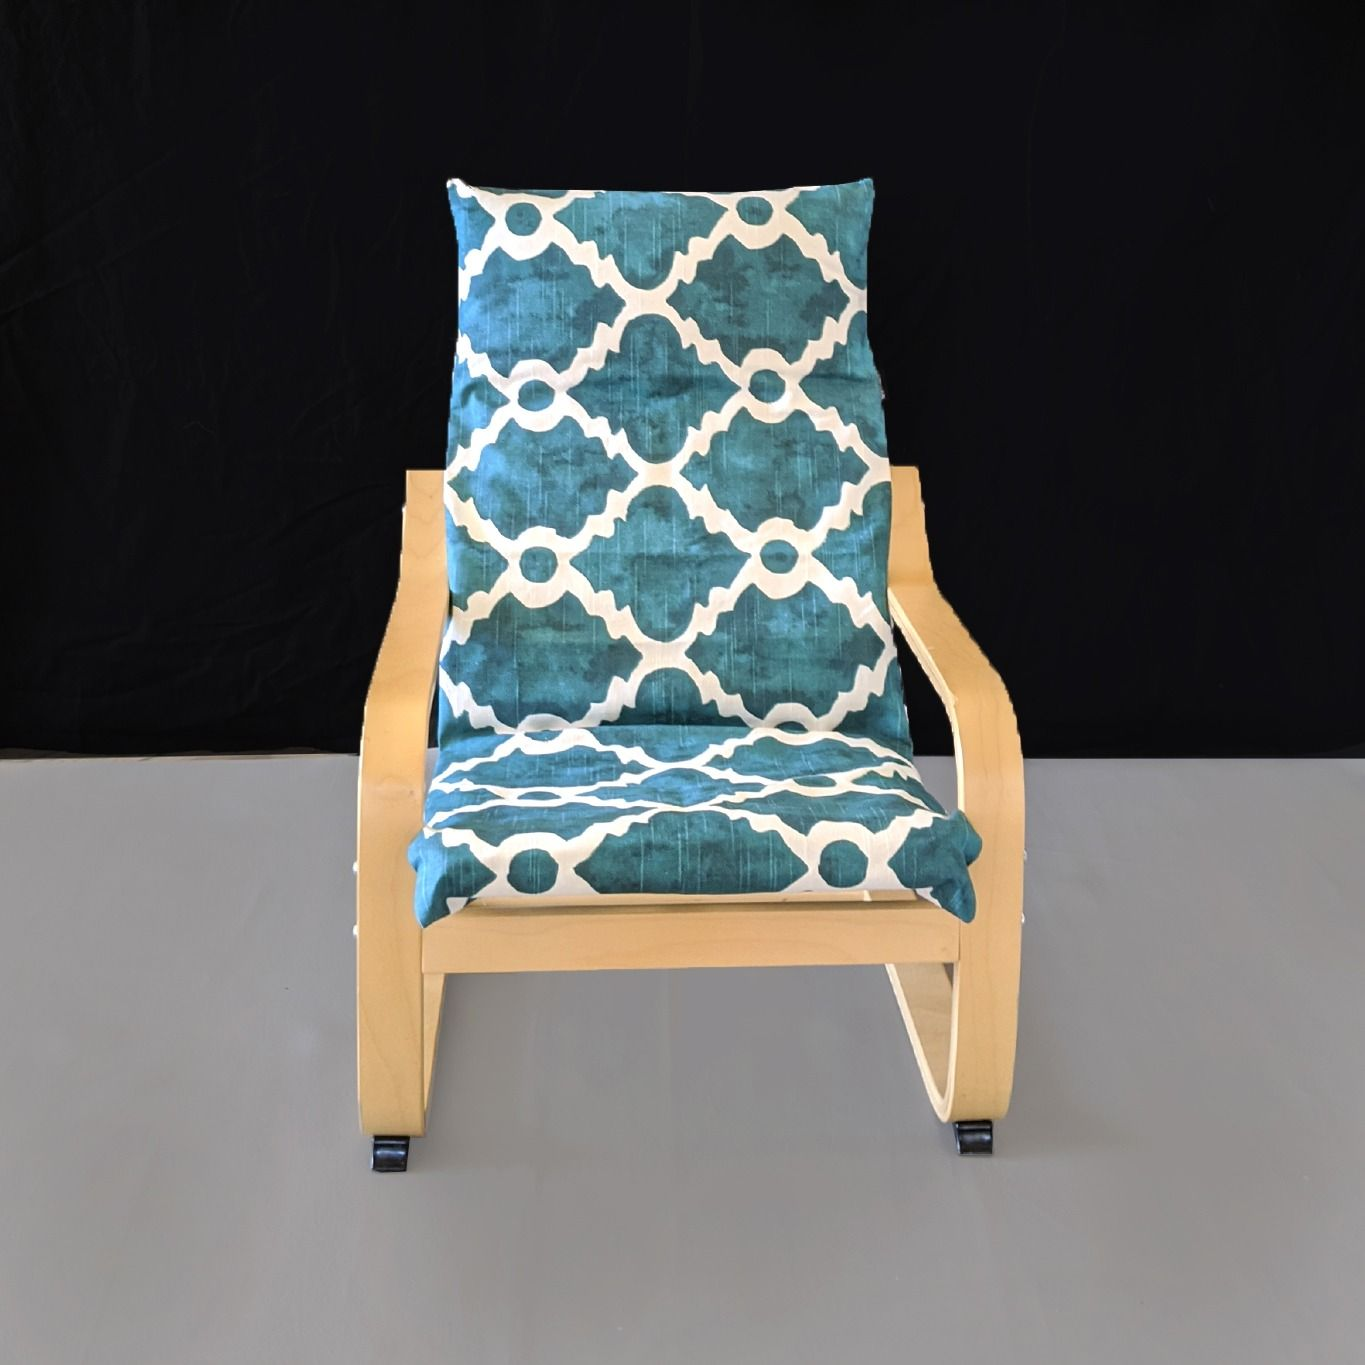 Teal Blue Patterned Child S Ikea Poang Seat Cover In 2020 Ikea